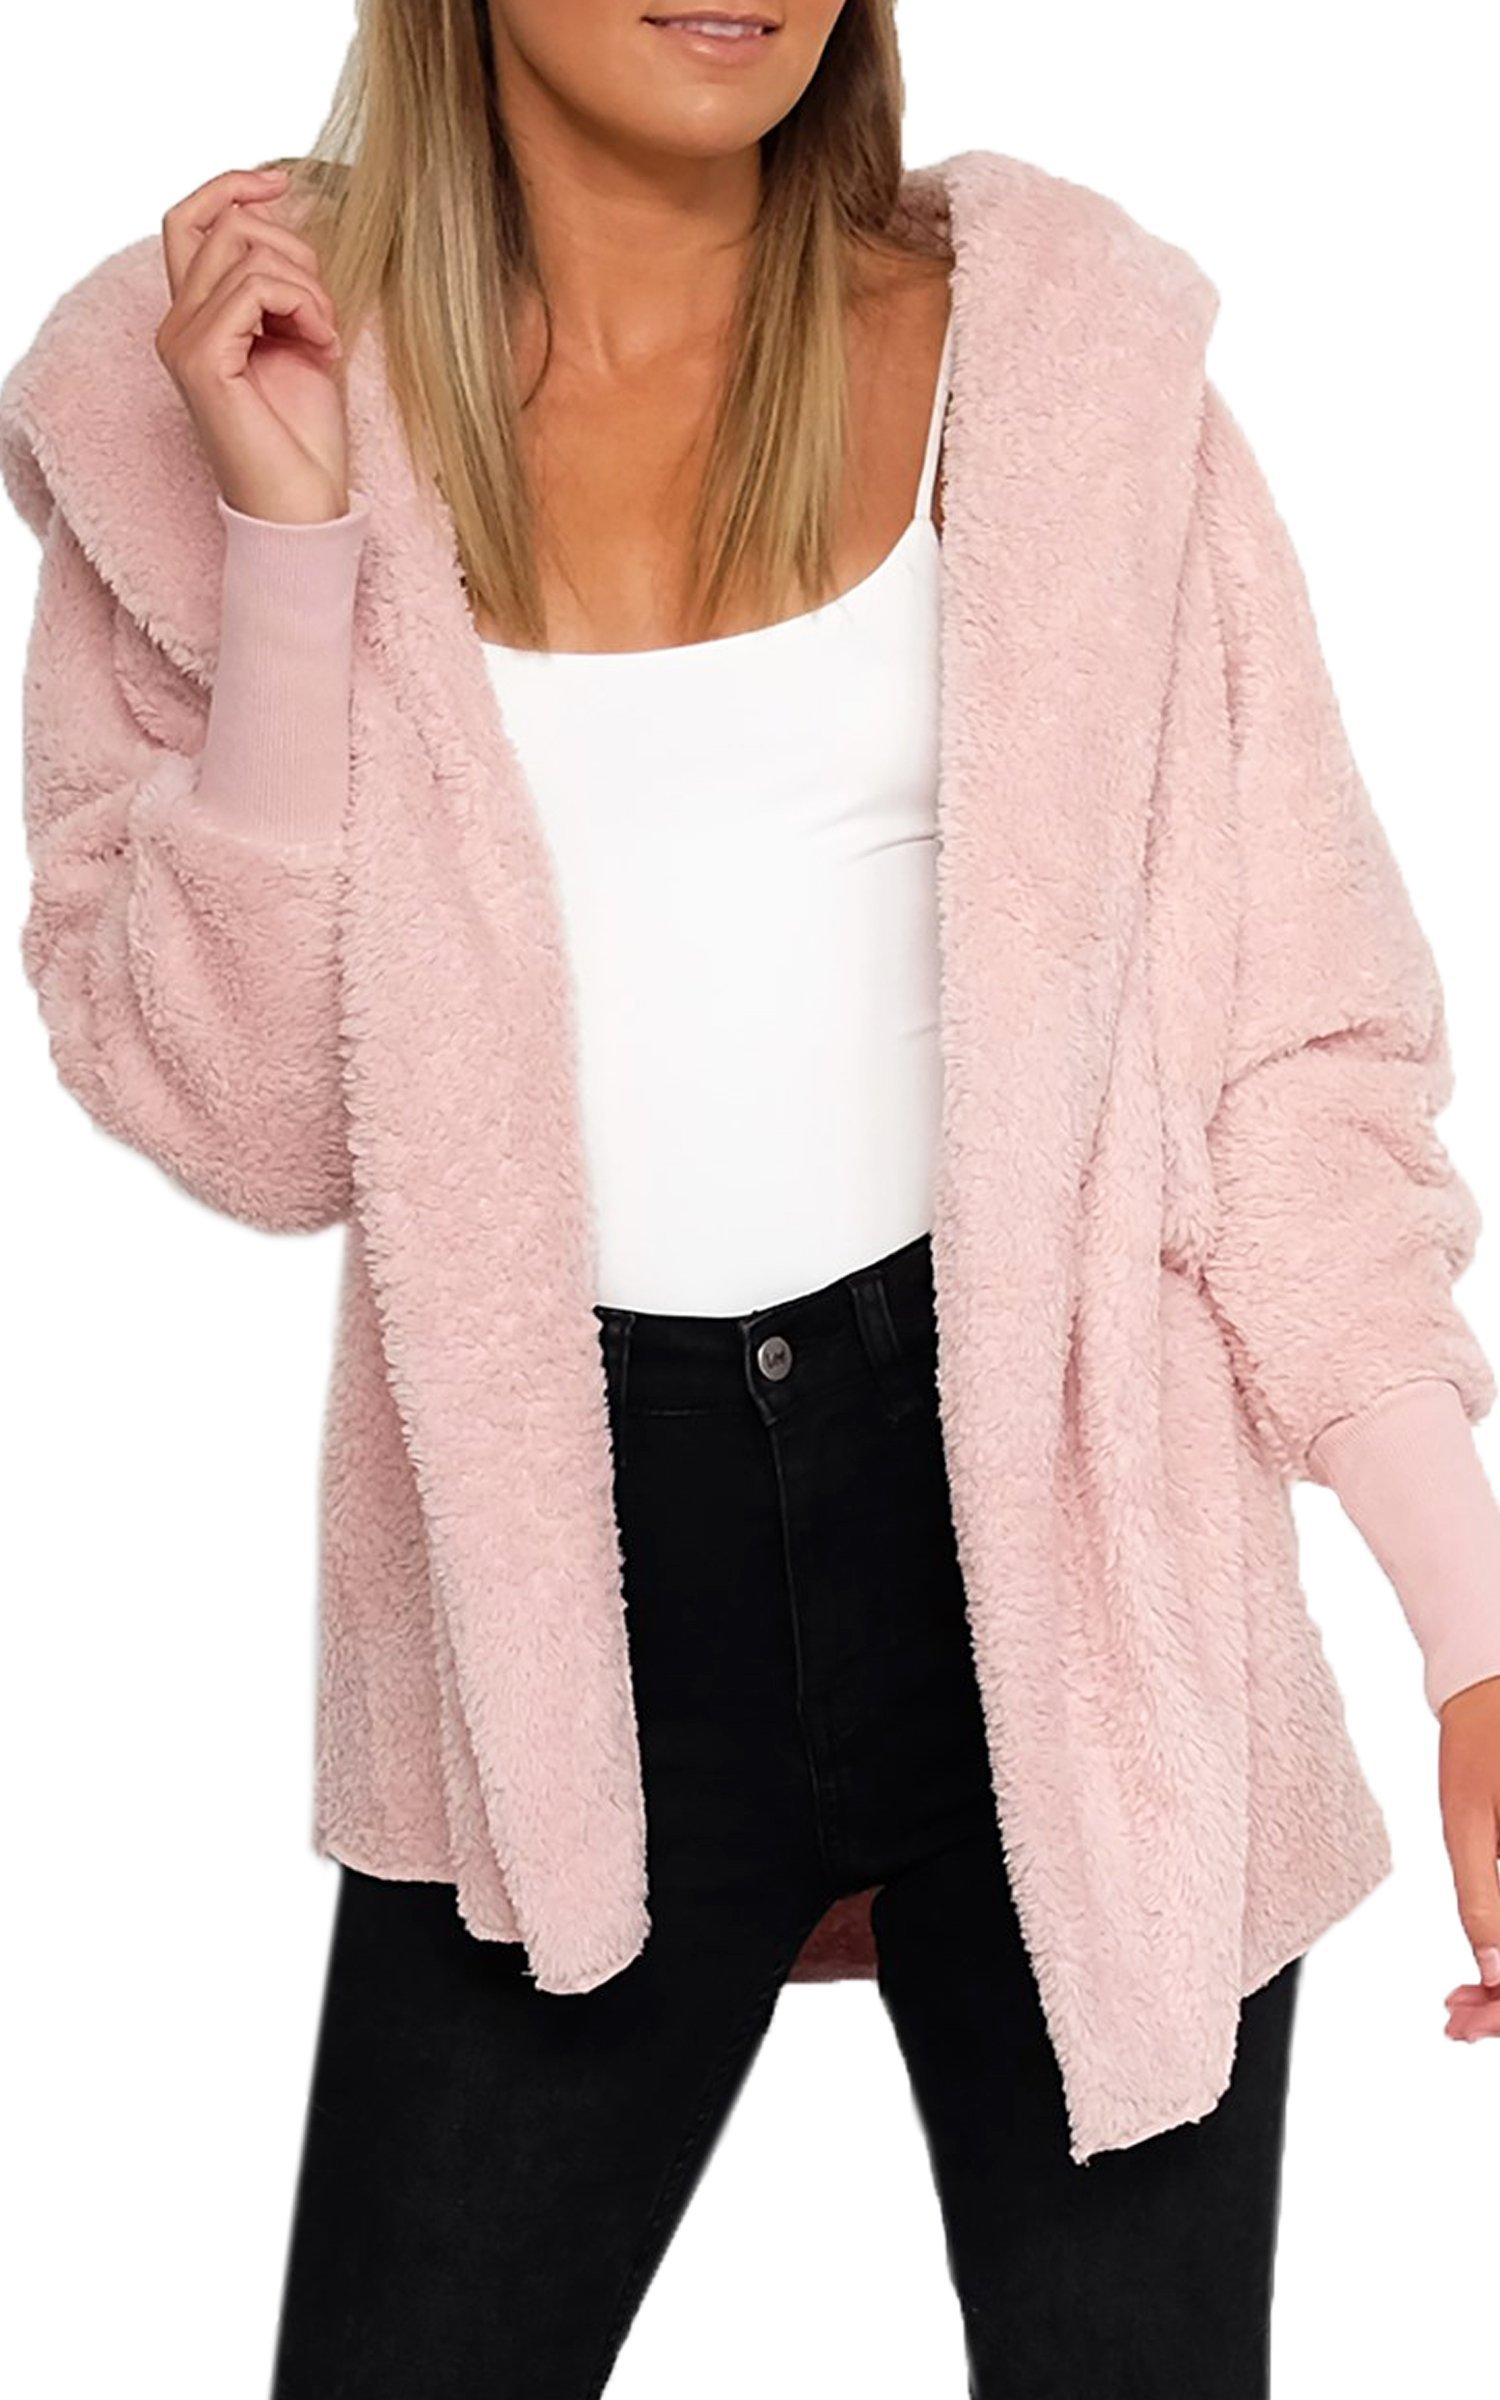 ECOWISH Womens Fashion Faux Shearling Warm Coat Long Sleeve Soft Winter Hooded Cardigan Outerwear Pink S